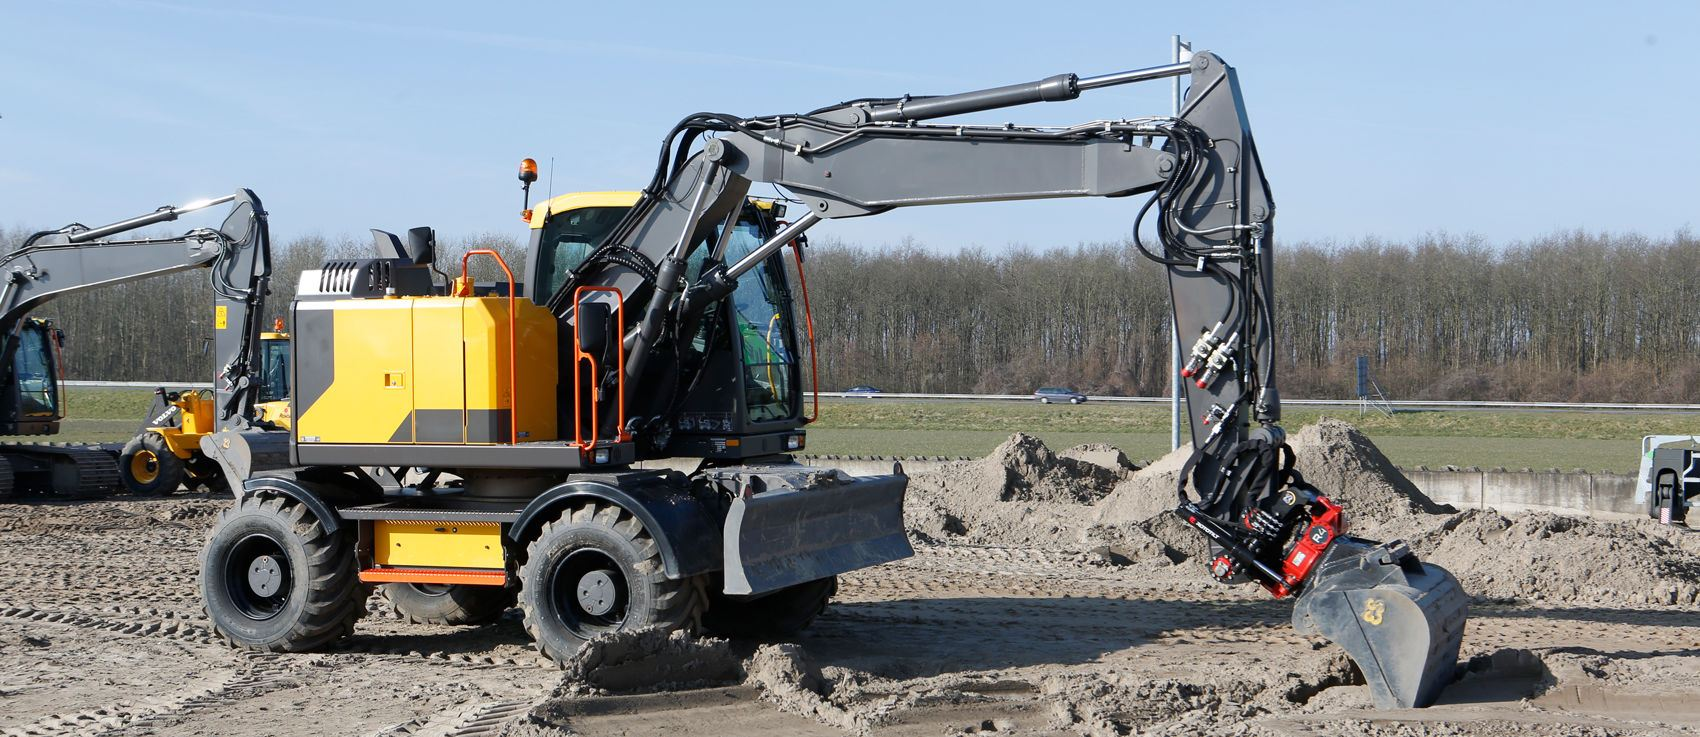 compact-wheeled-excavator-eqiupped-with-a-tilt-rotator.jpg